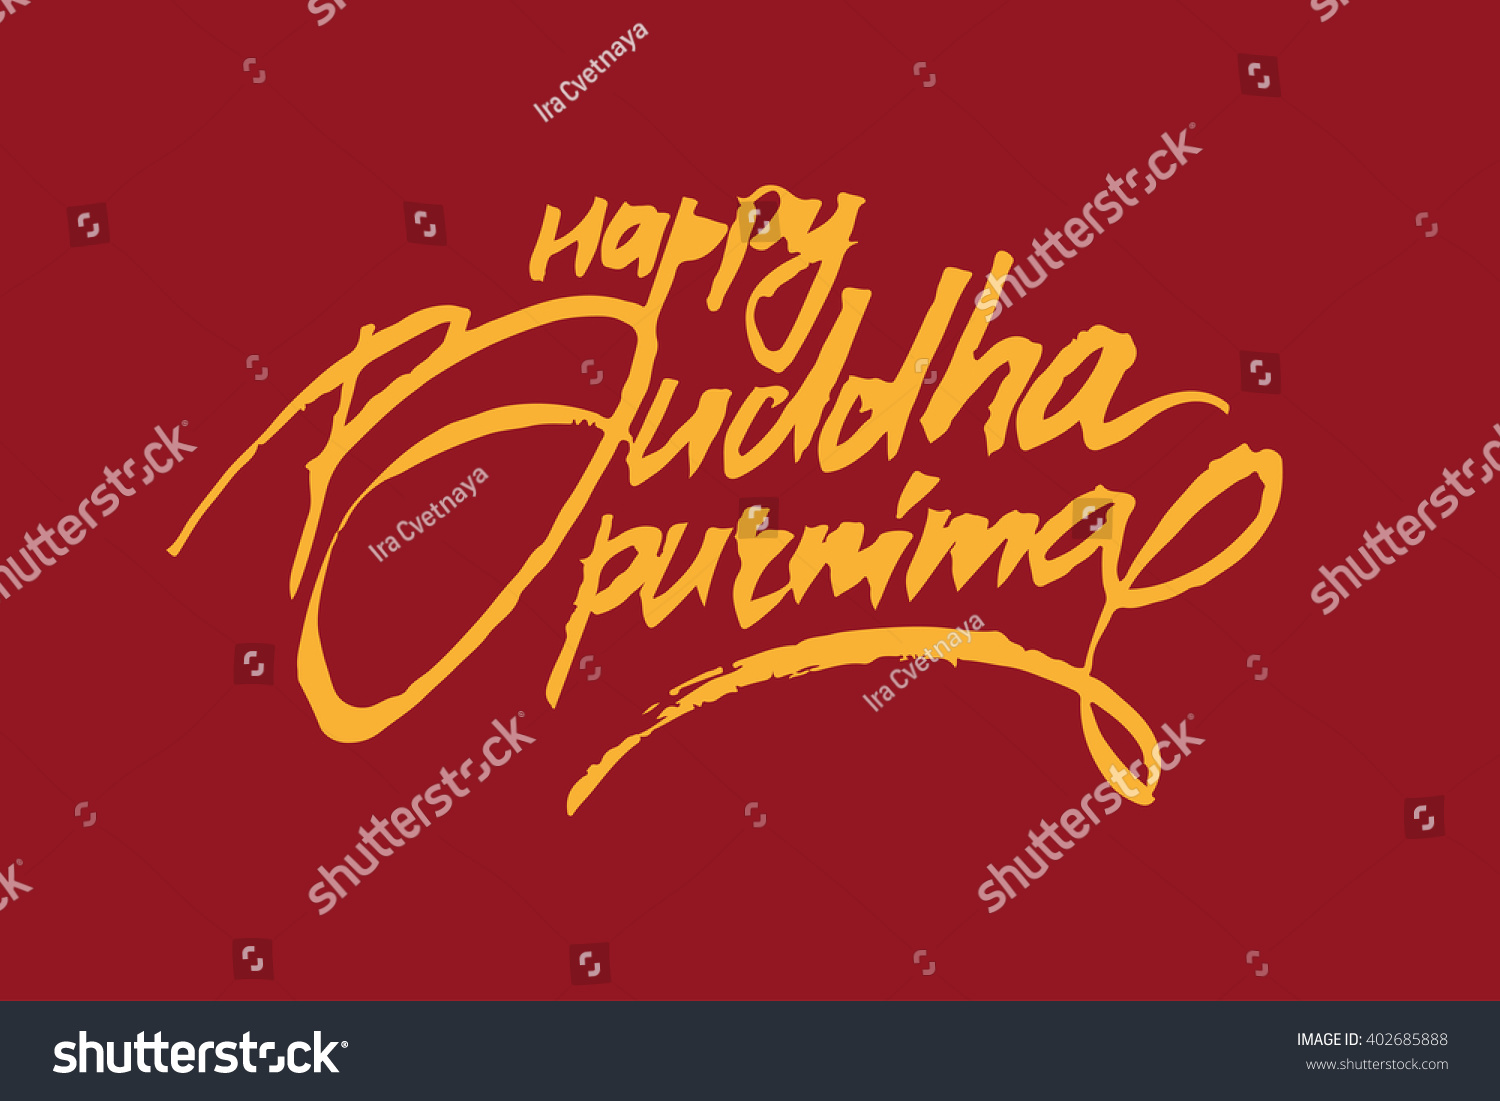 Buddha purnima hand drawn text lettering stock vector 402685888 buddha purnima hand drawn text lettering isolate over red kristyandbryce Image collections